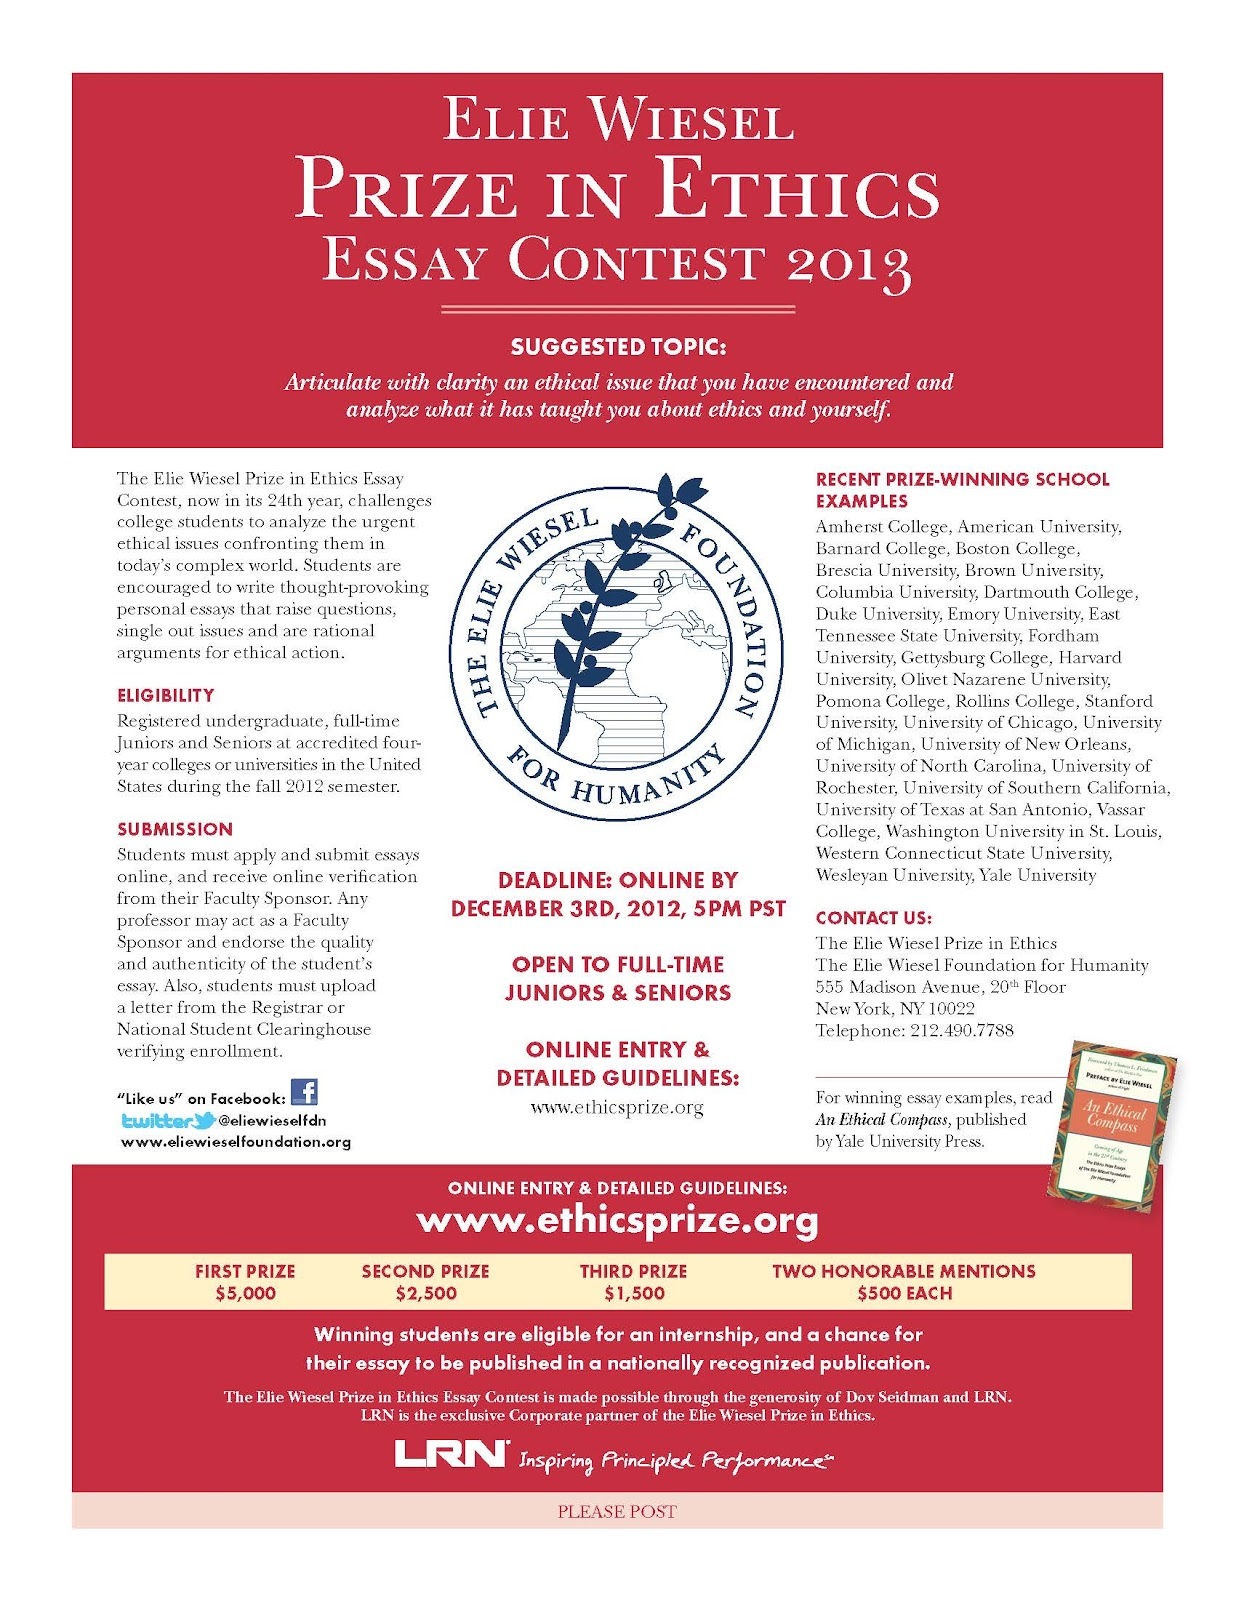 politics essay contest The independent social research foundation (isrf) and the cambridge journal of economics (cje) intend to award a prize of €7,000 for the best essay on the topic.